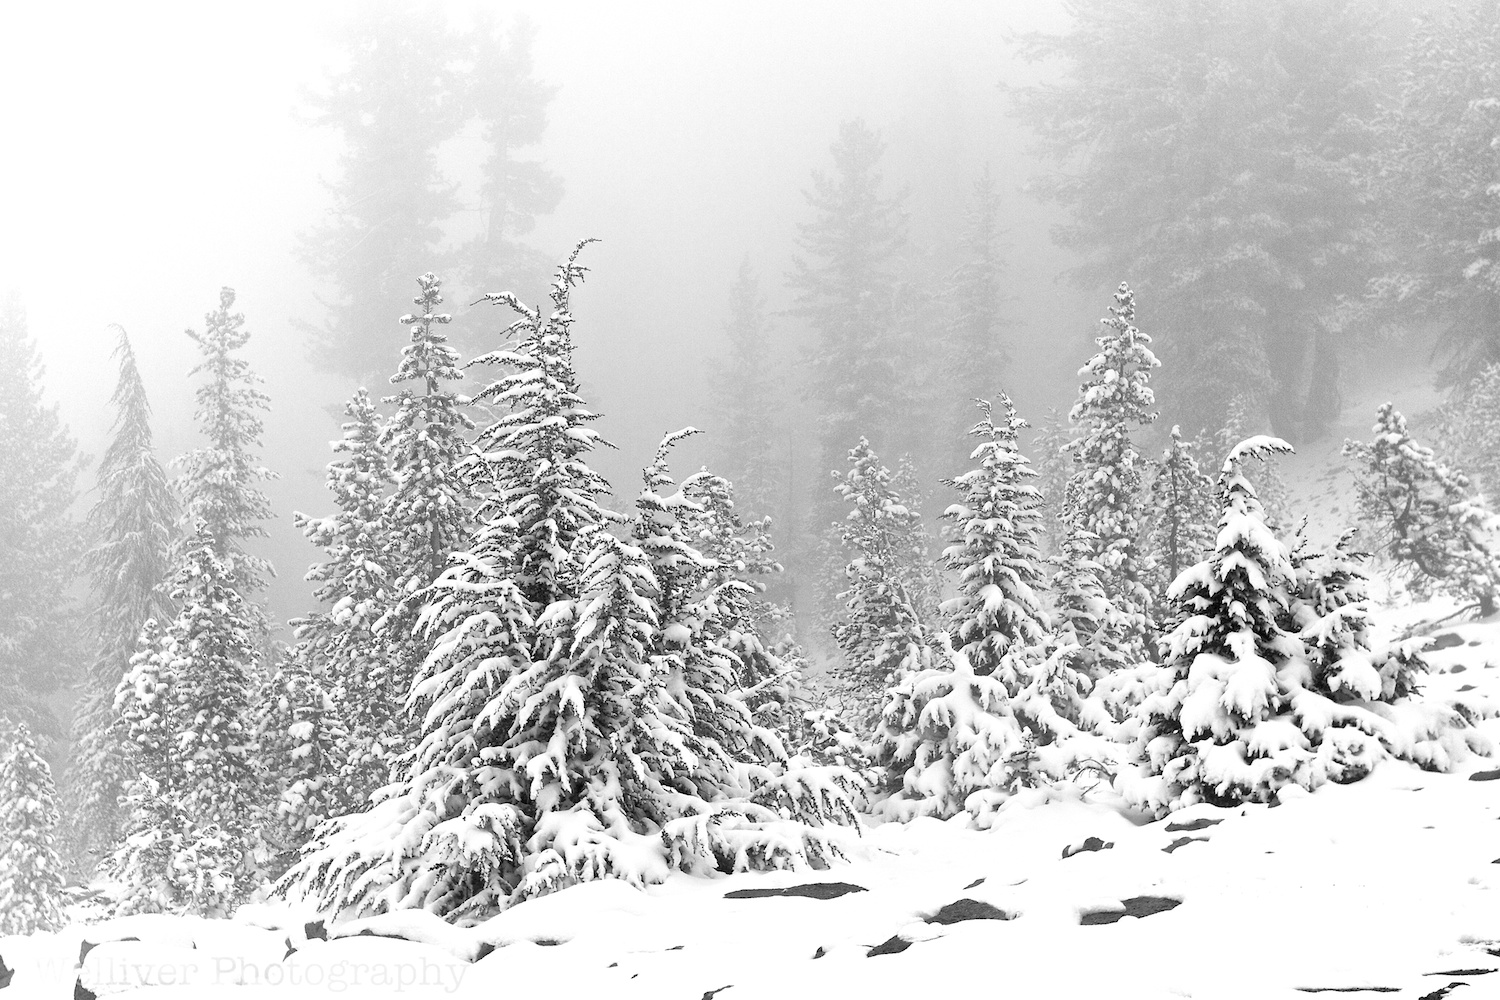 Kaiser Wilderness: Snowy Trees by Terry.